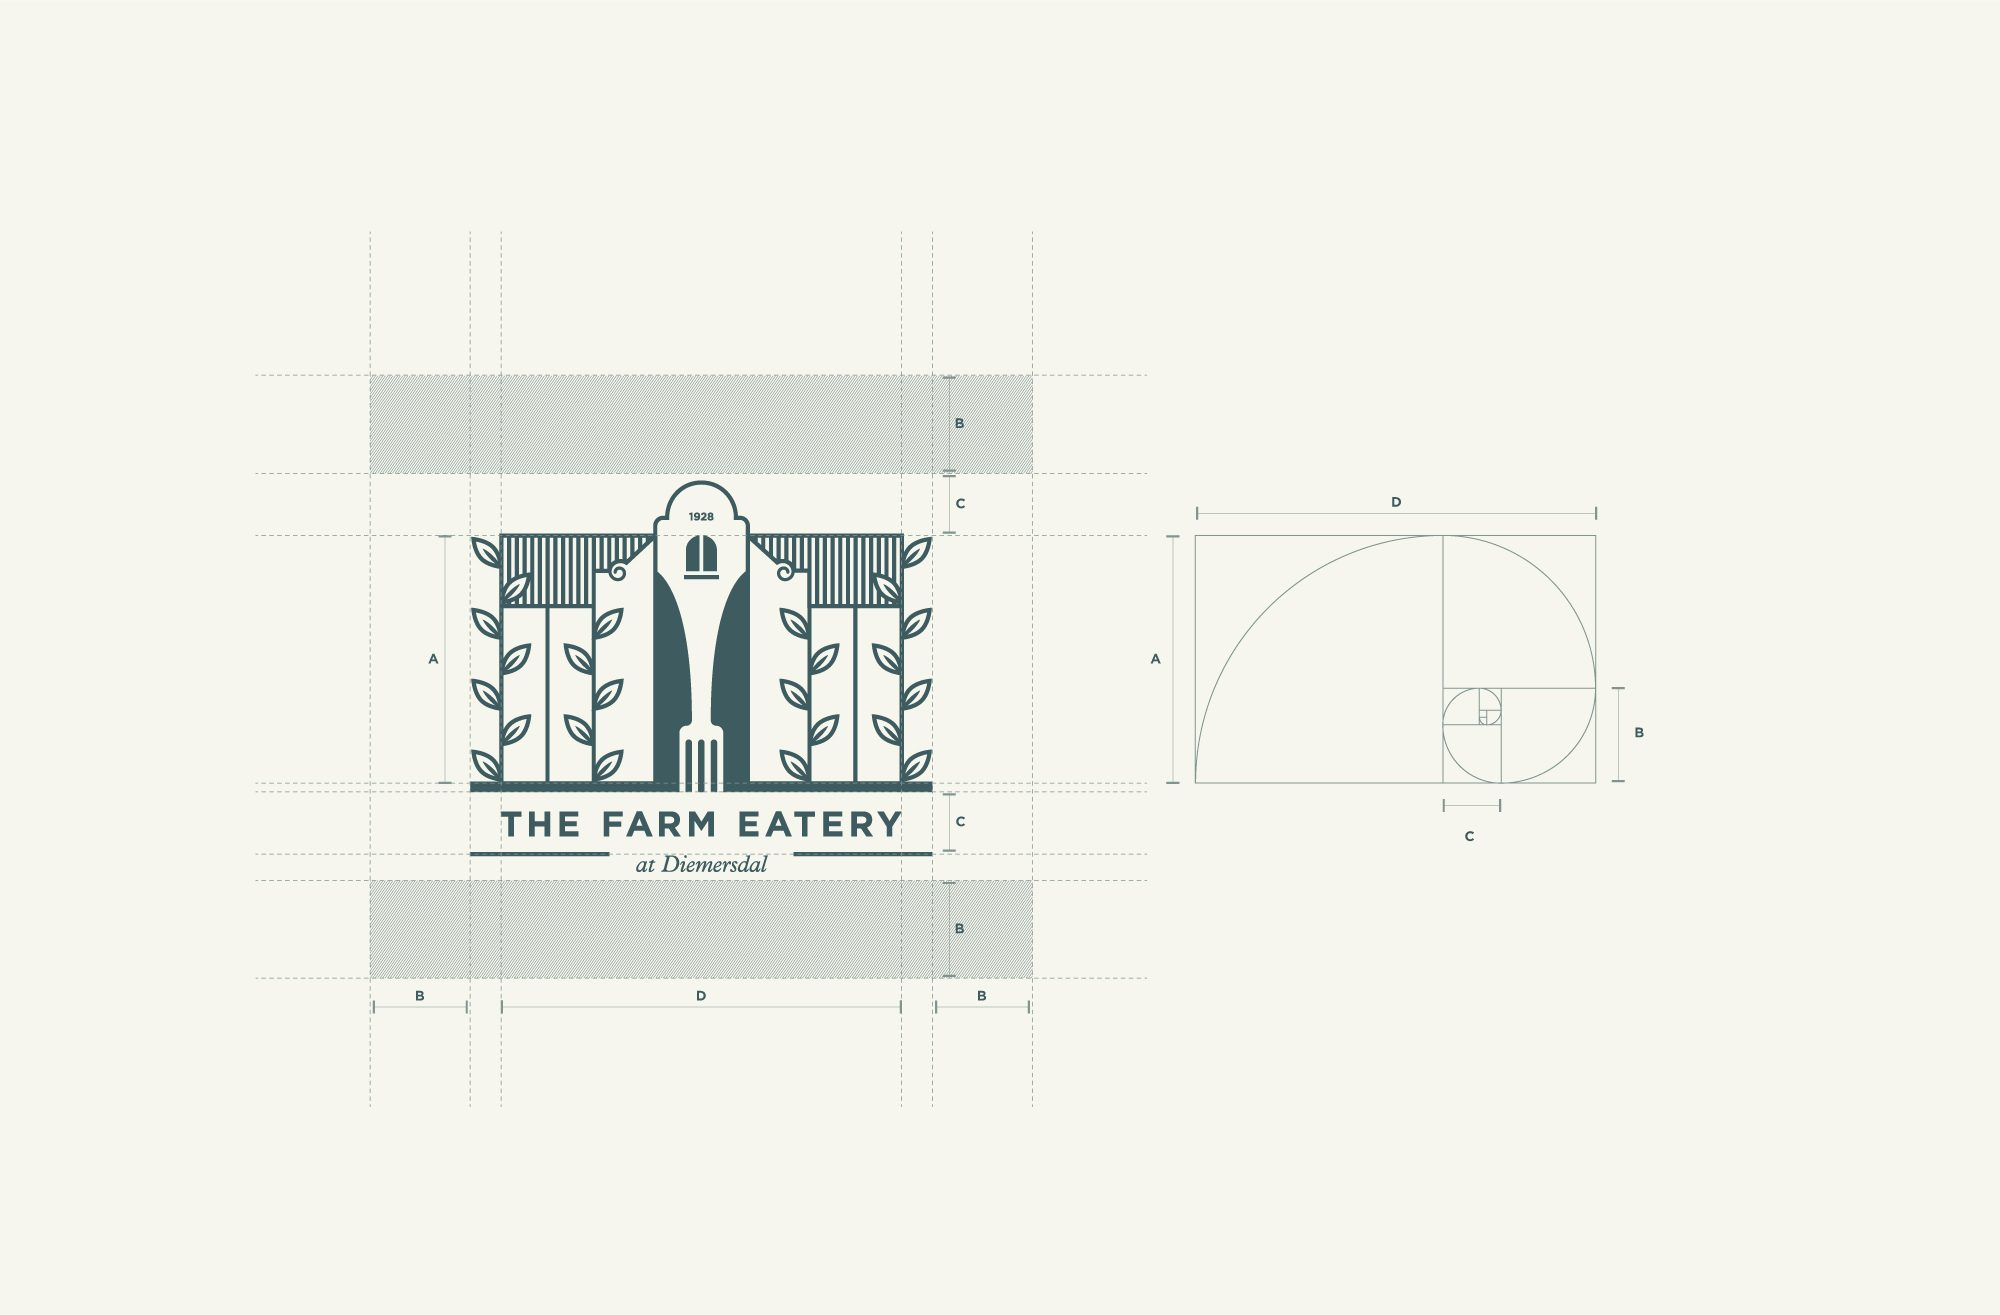 The Farm Eatery Visual System (Logomark)